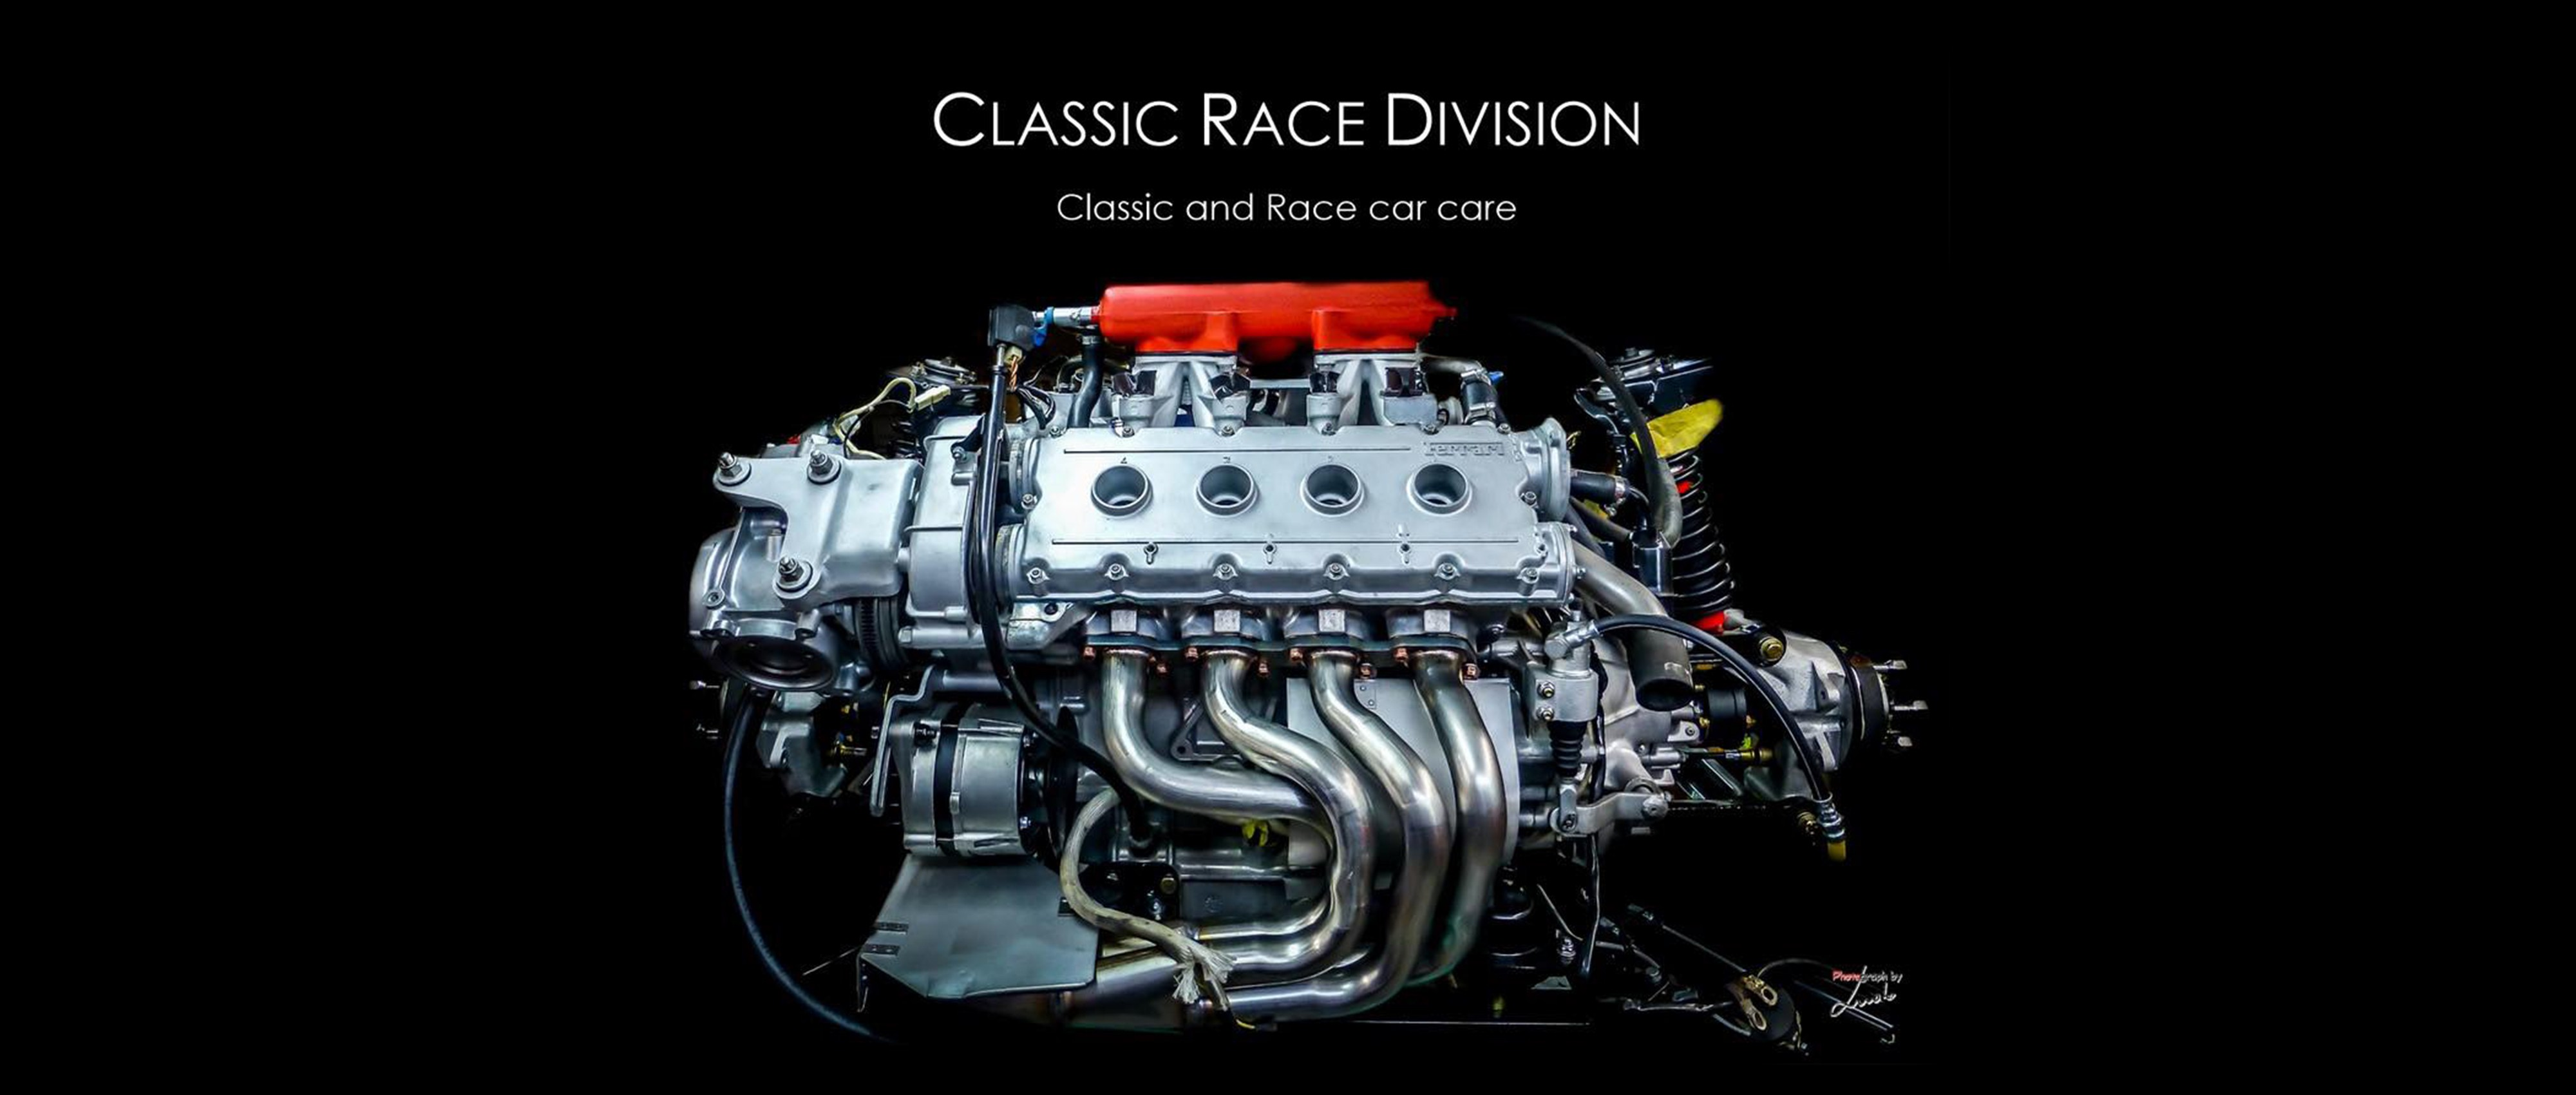 Header Classic Race Division - Classic and Race car care Malle